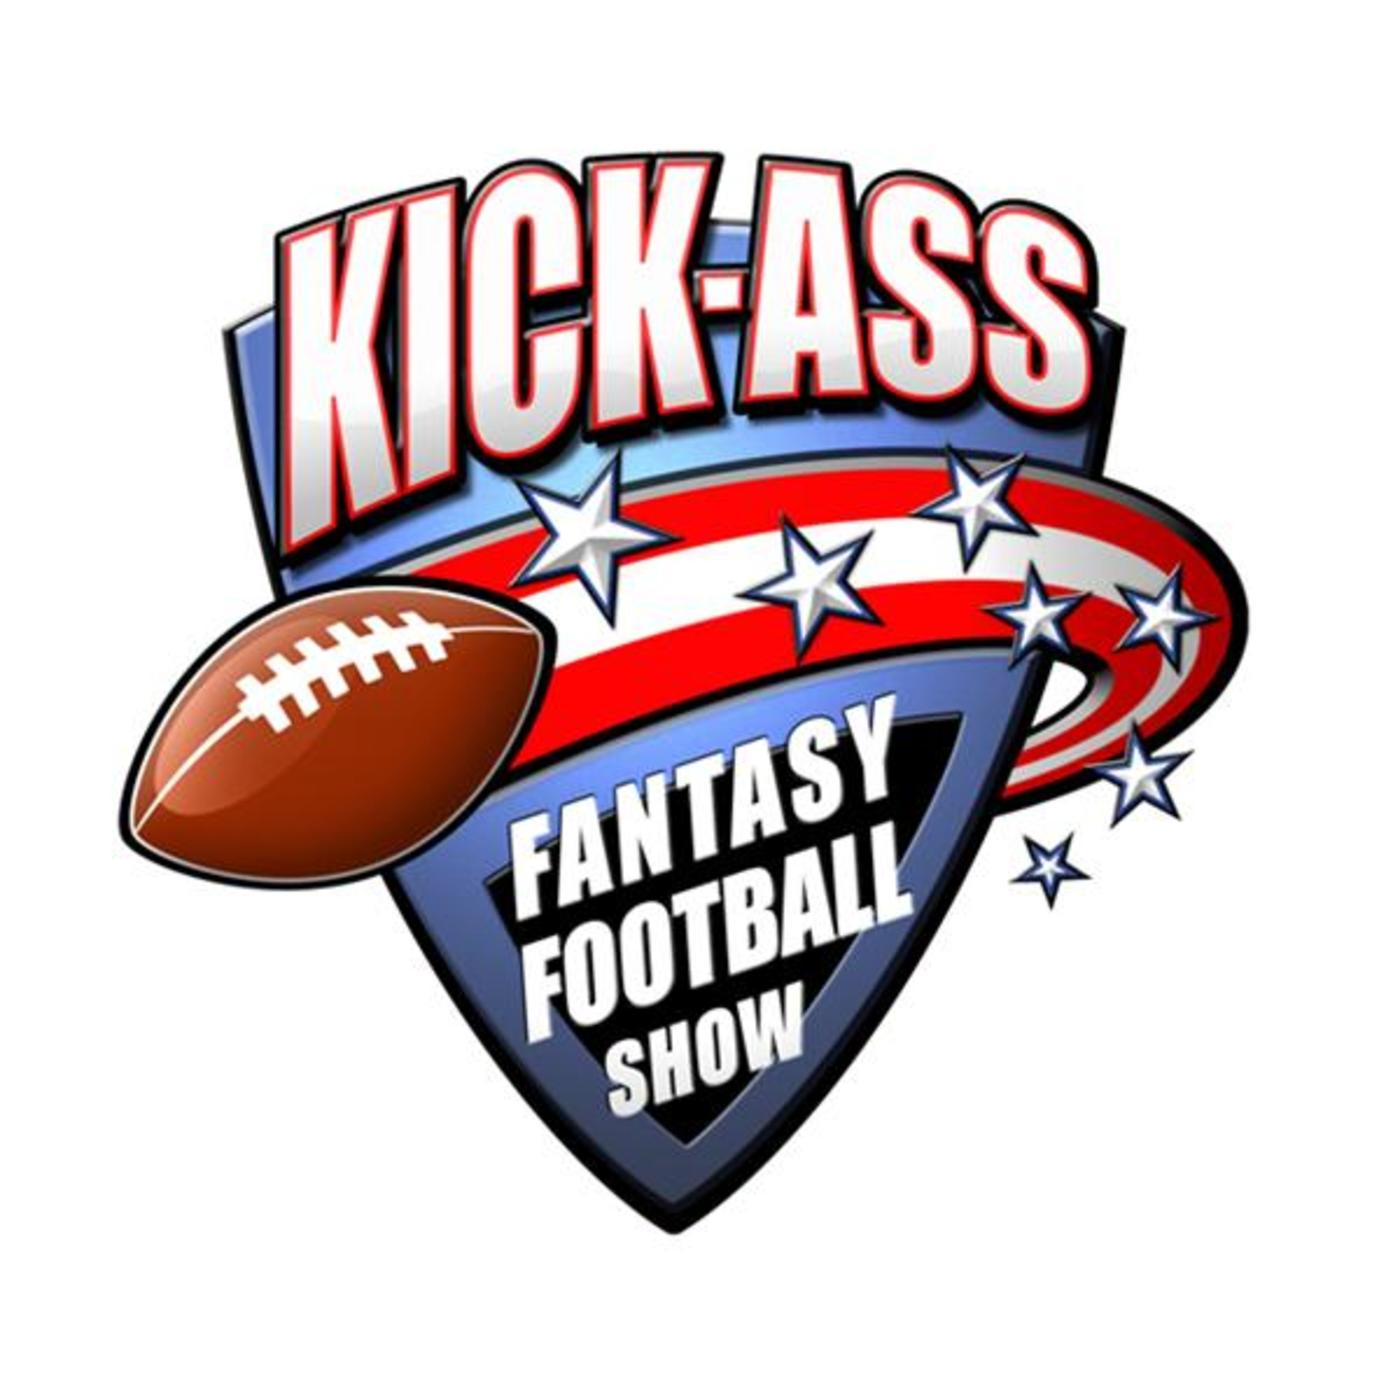 Kick Ass Fantasy Football